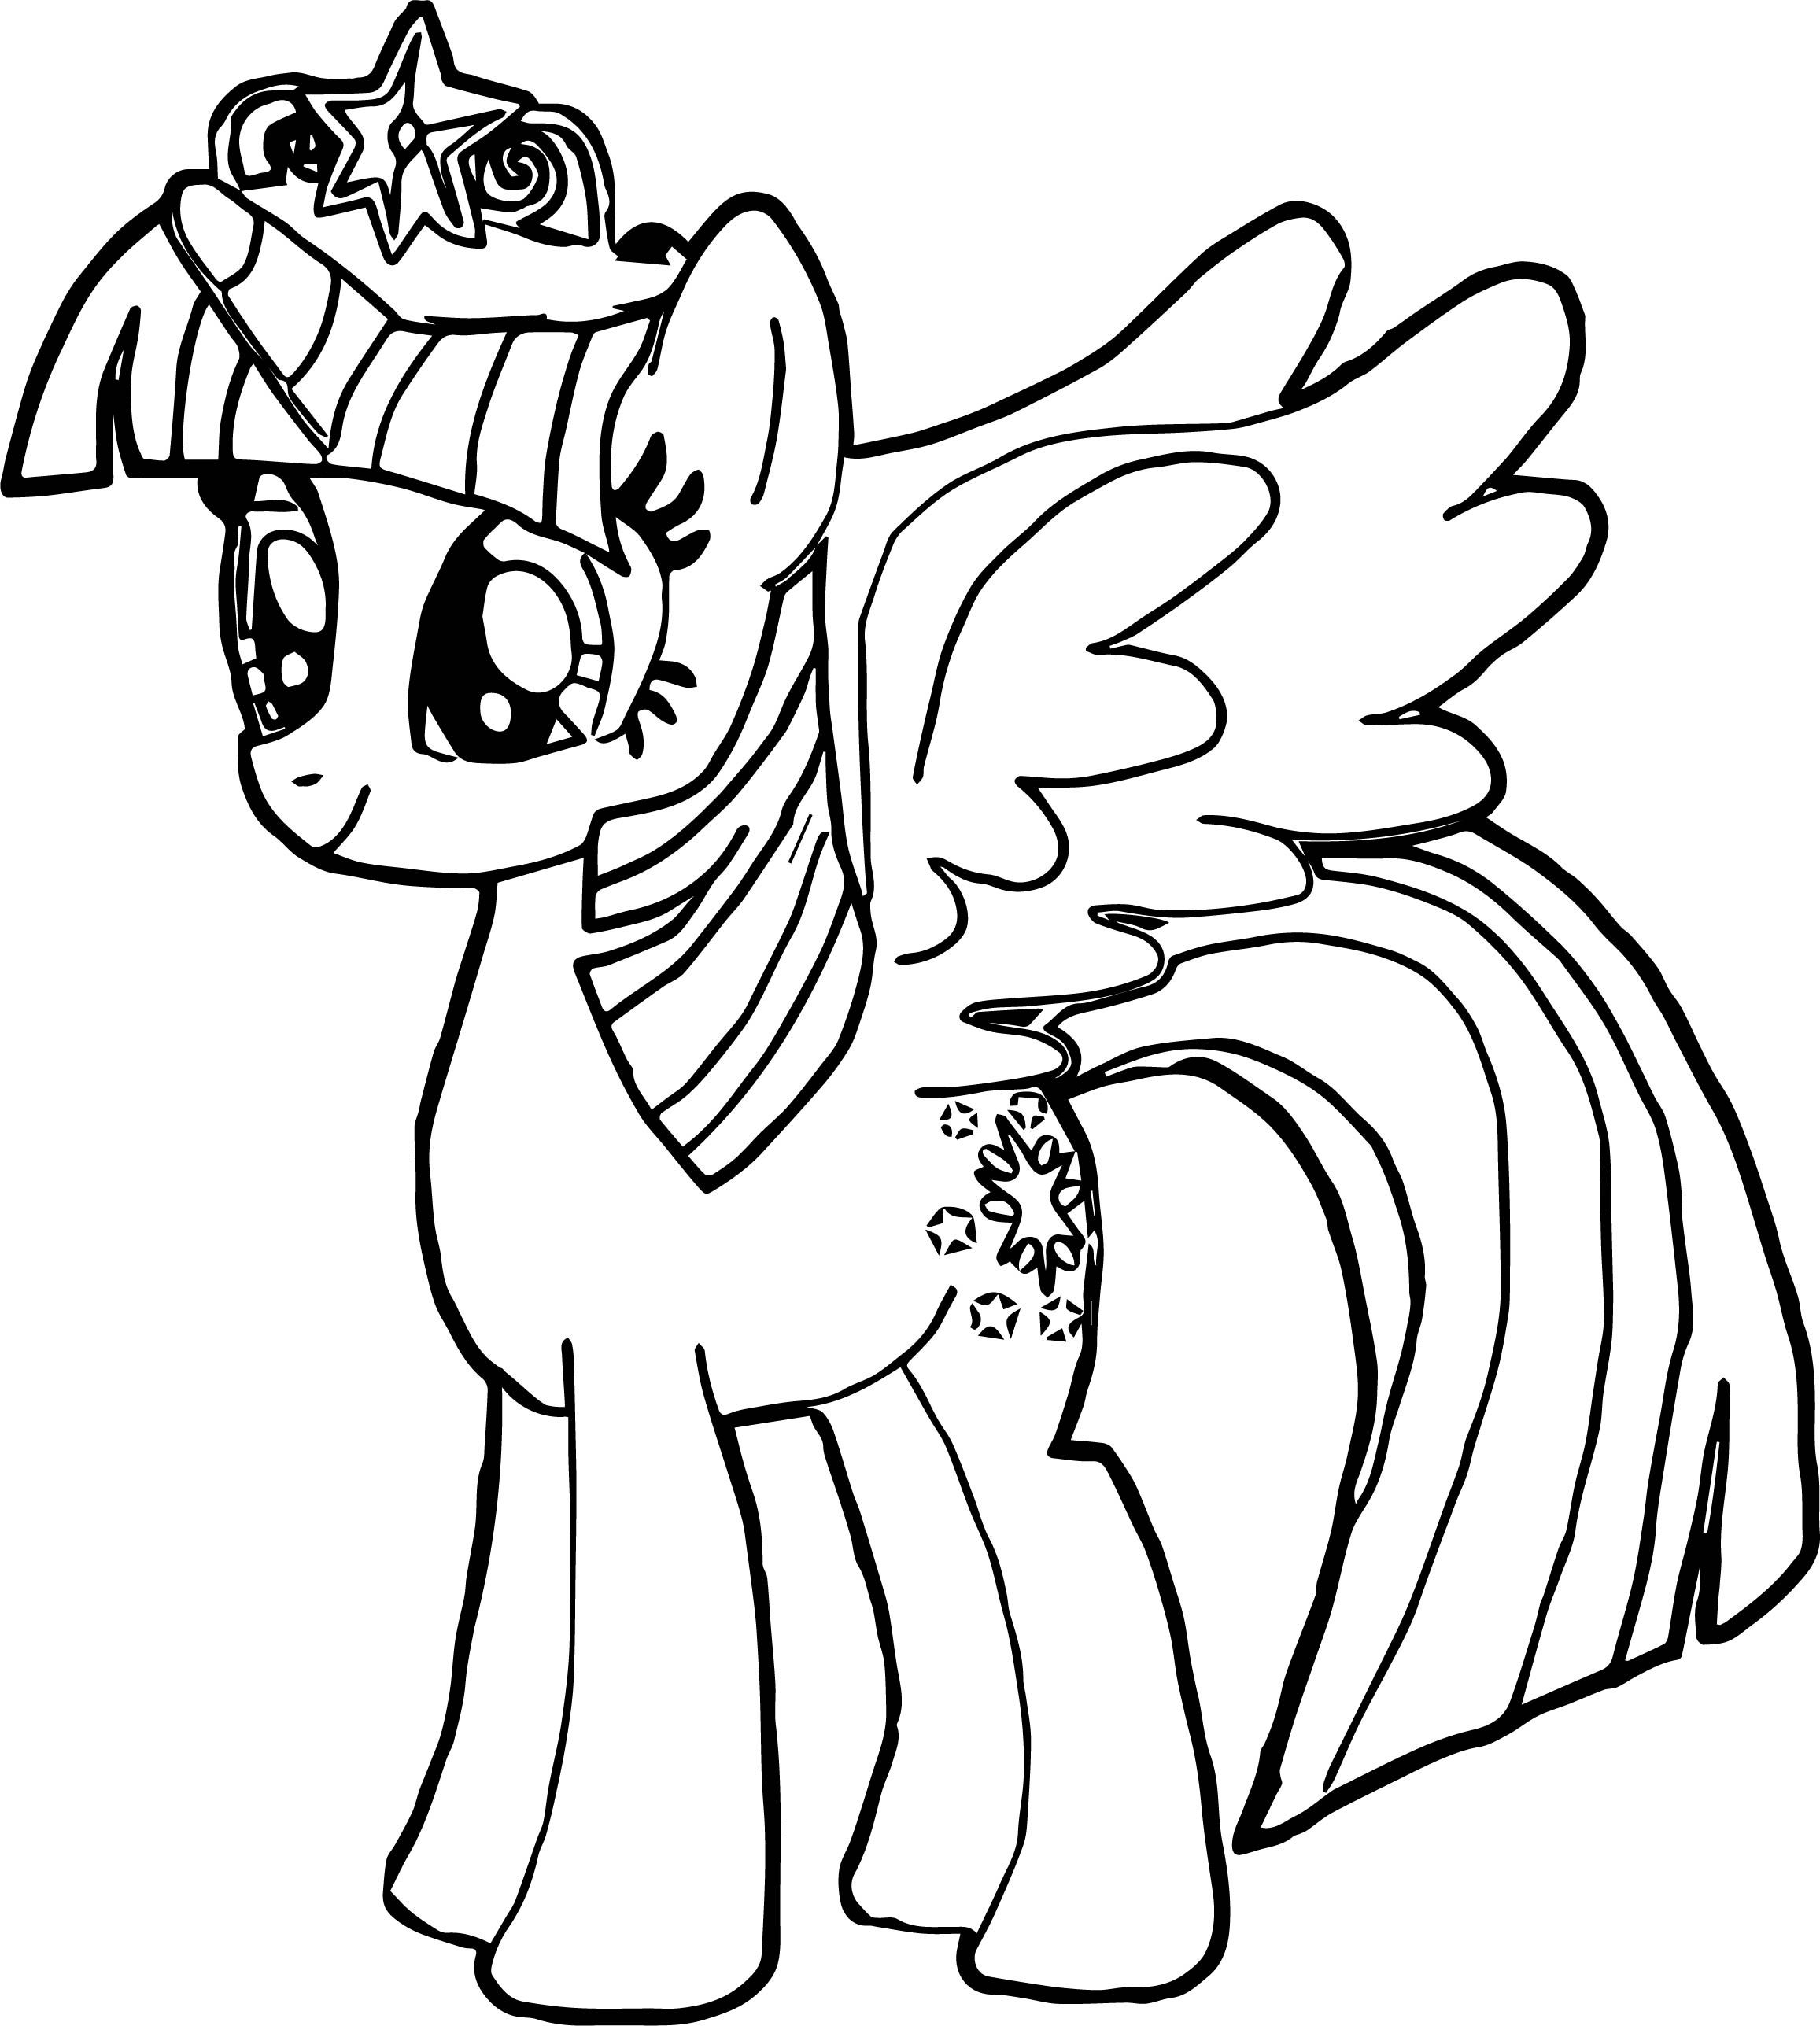 Princess Twilight Sparkle Coloring Page In